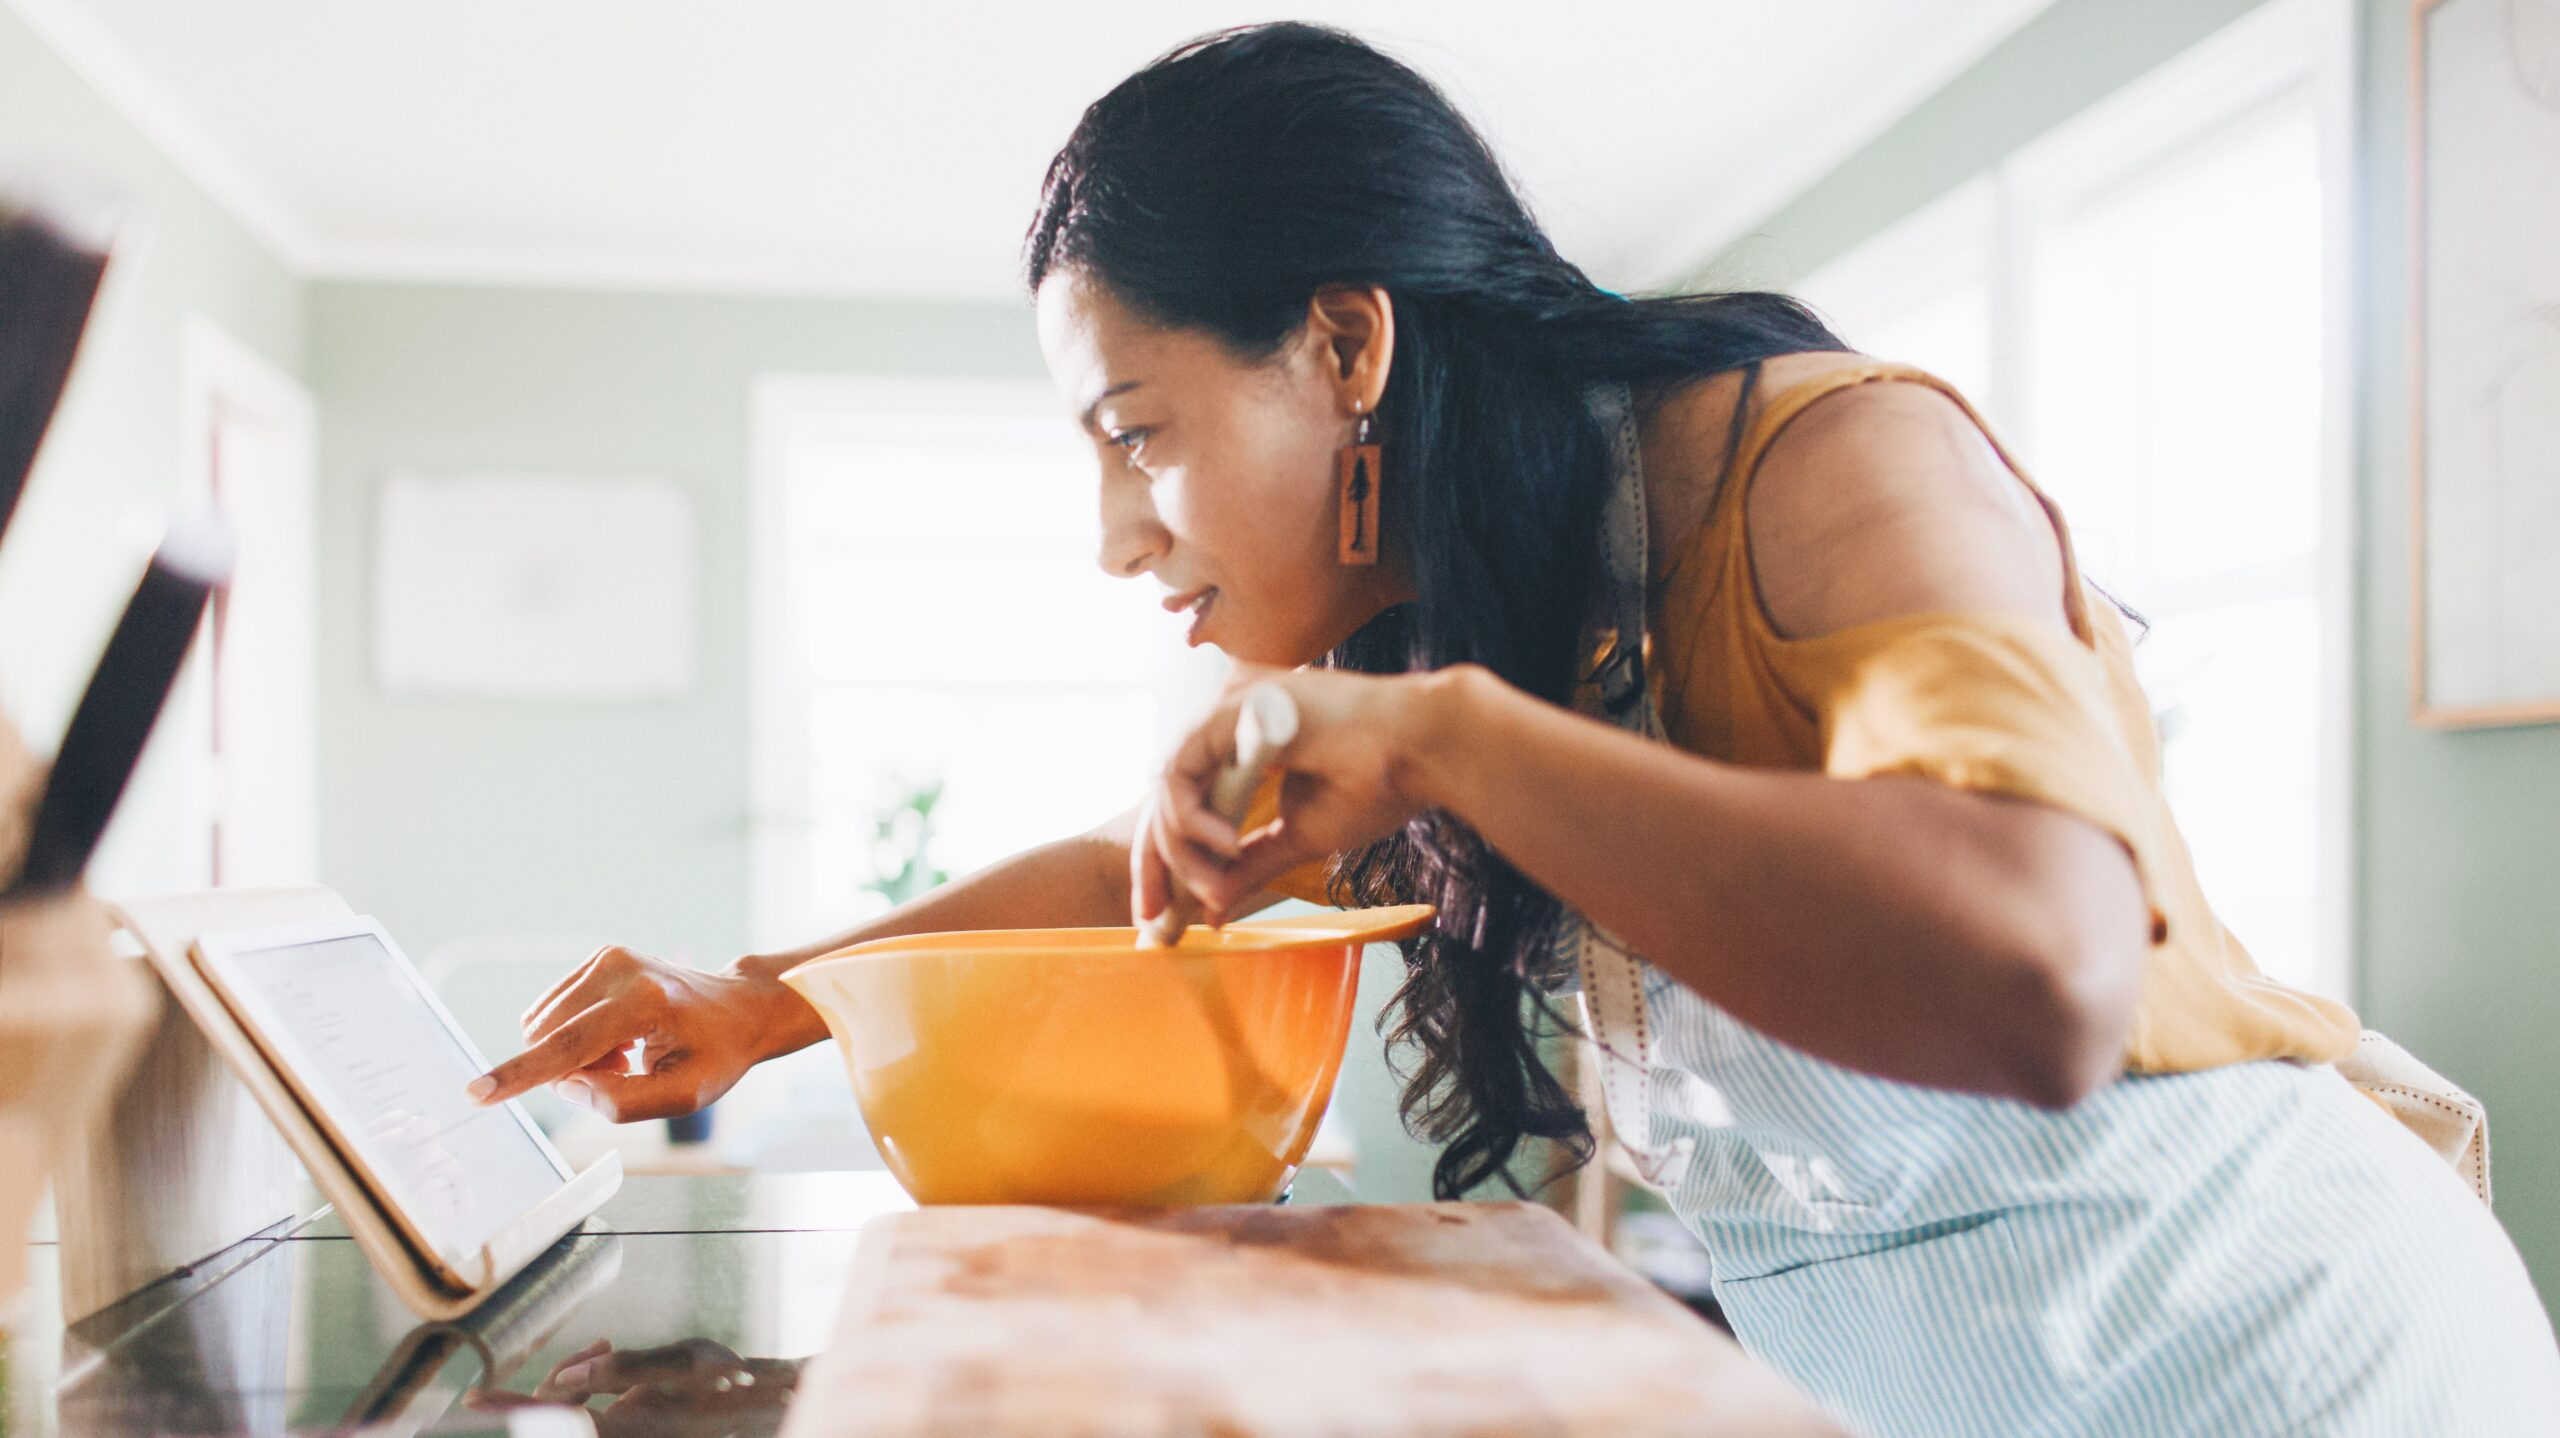 Online Cooking Classes Bring Global Cuisines Home